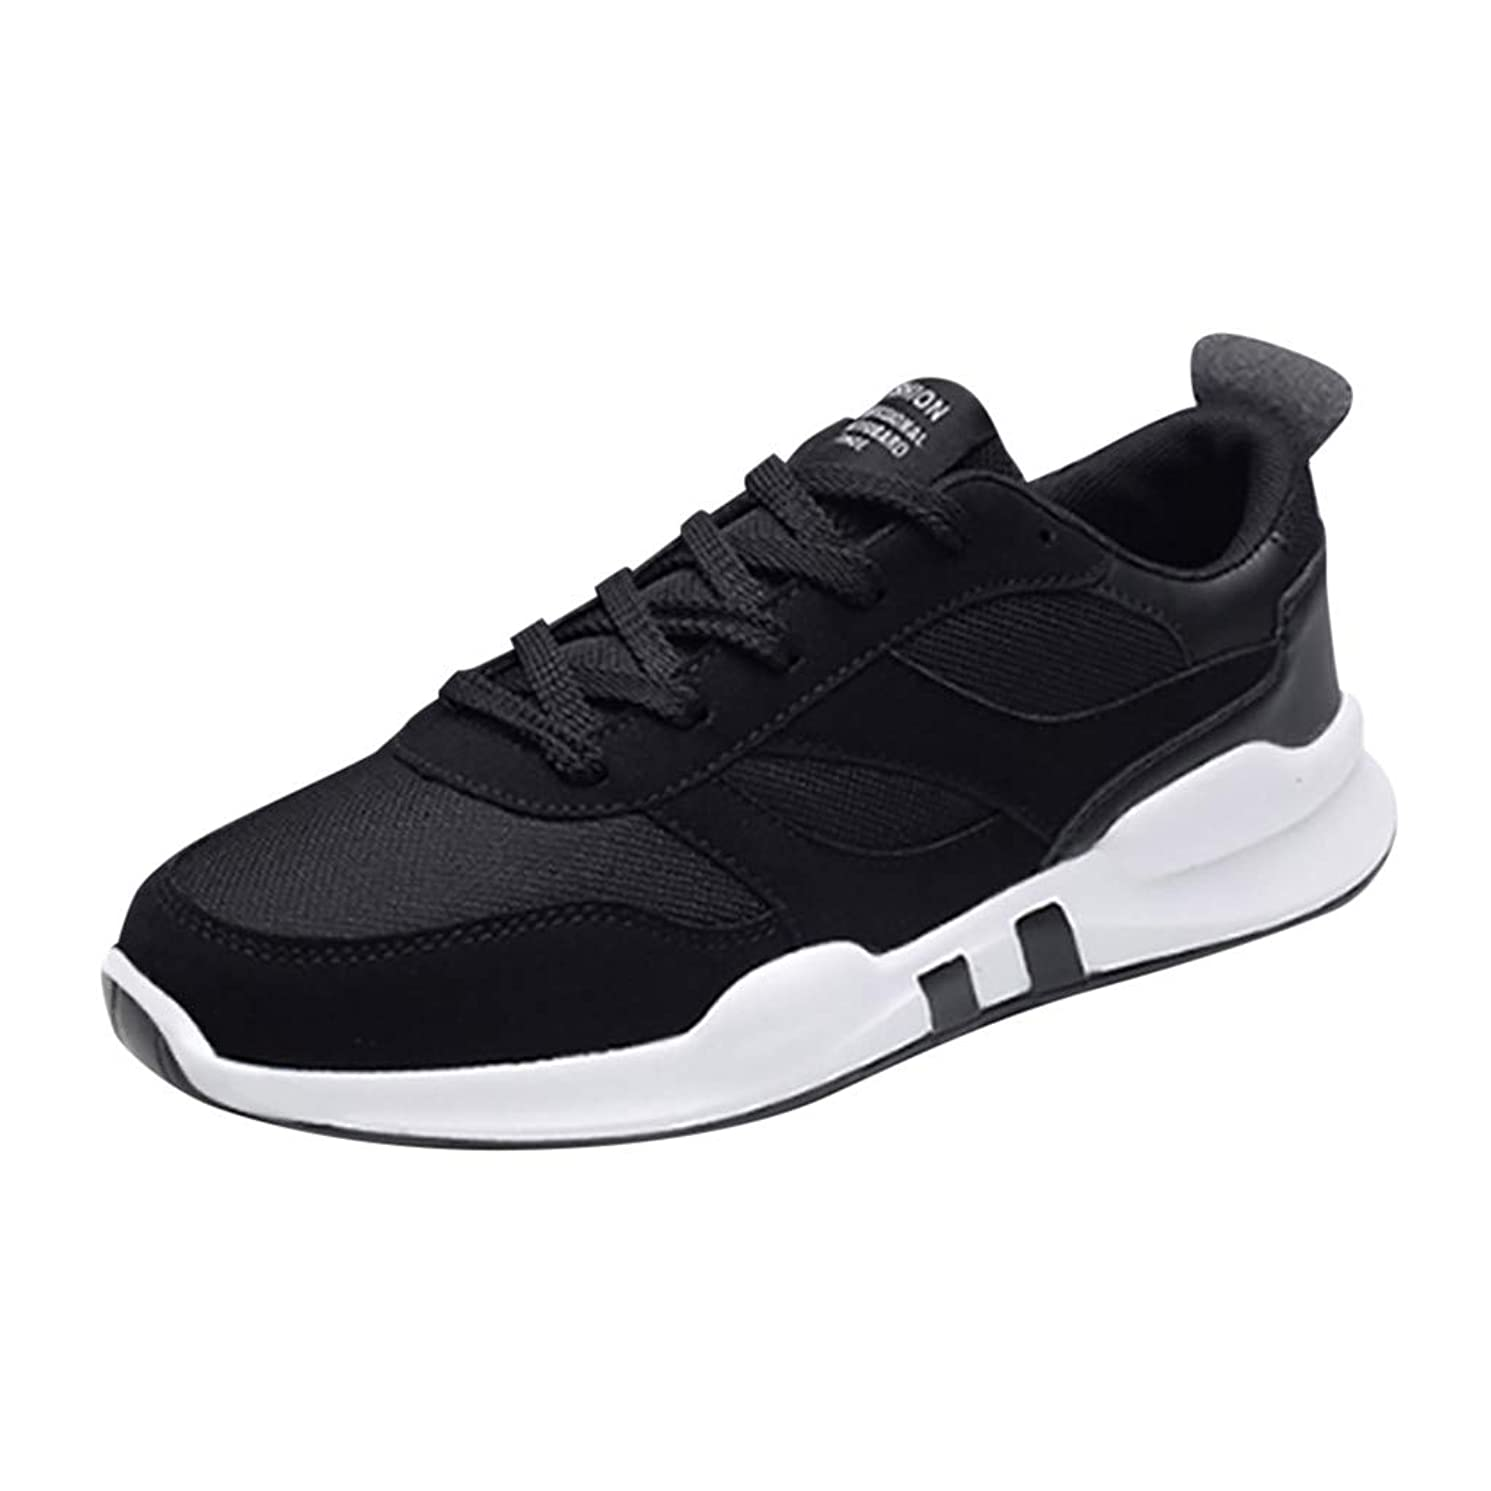 Wenysy Men's Fashion Comfortable Casual Mesh Breathable Lightweight Lace-Up Sneakers Running Shoes Single Shoes